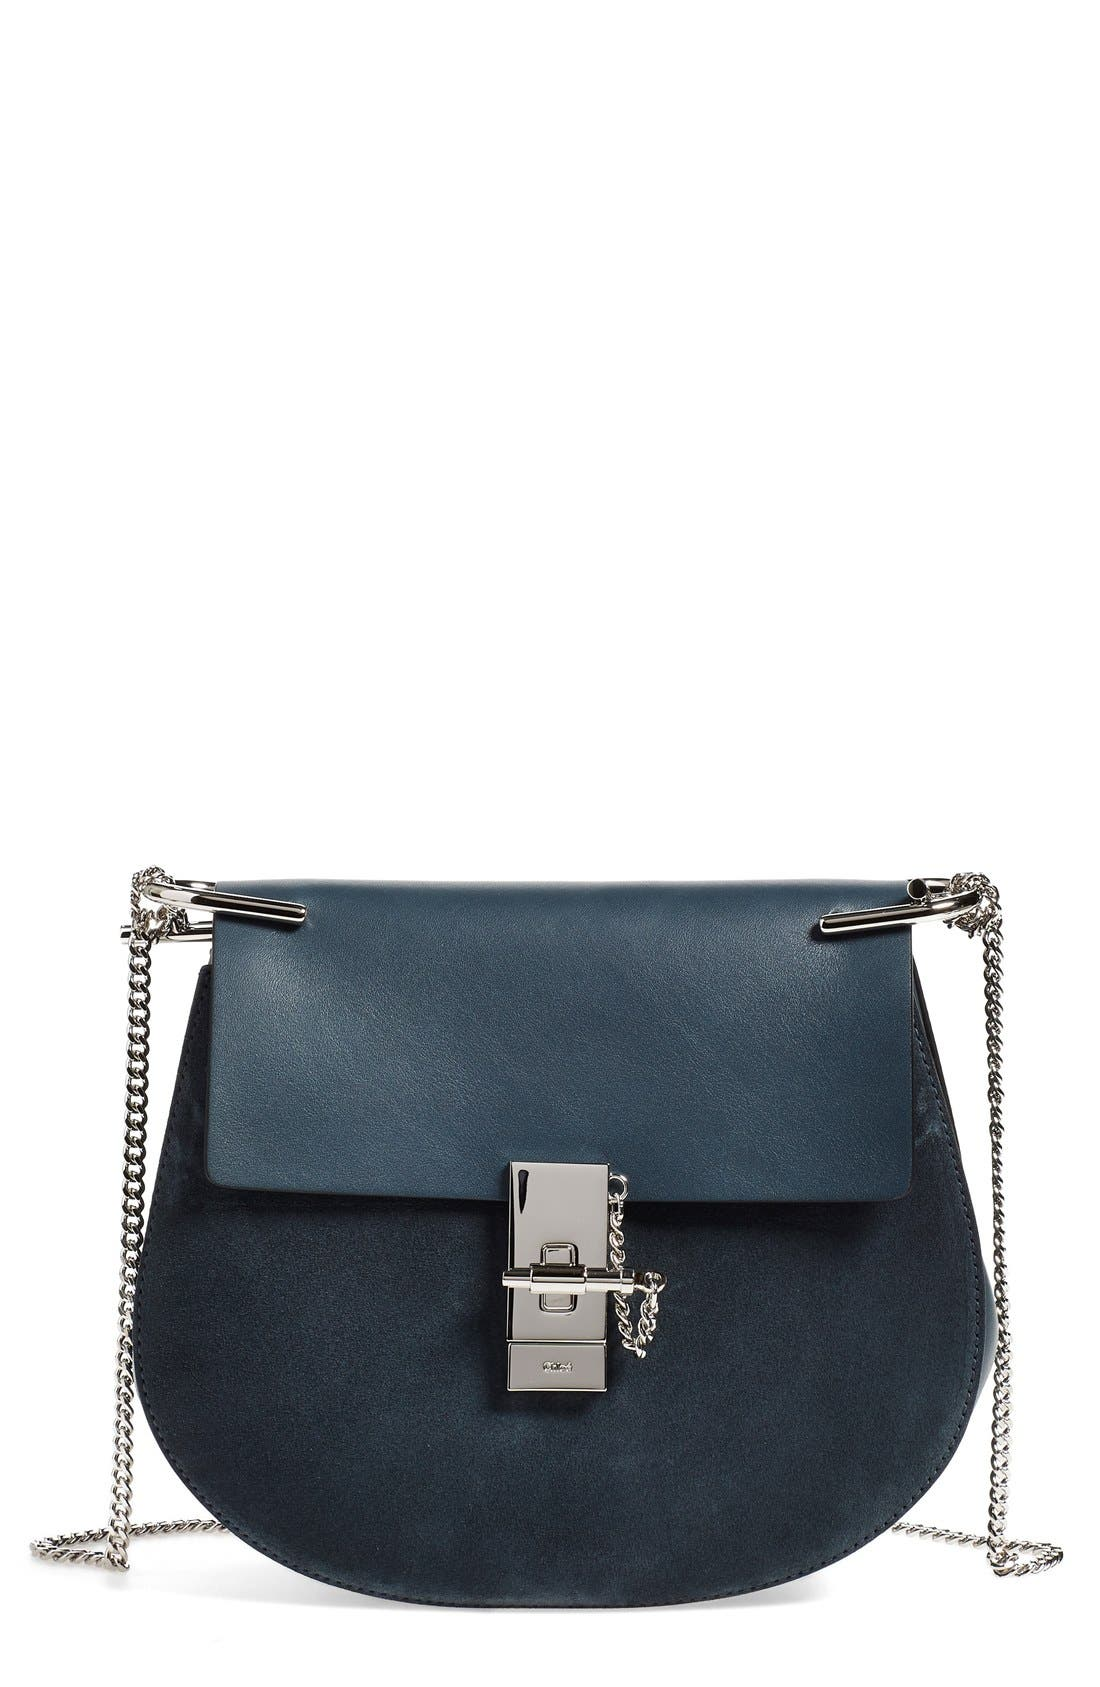 Alternate Image 1 Selected - Chloé Small Drew Leather & Suede Shoulder Bag